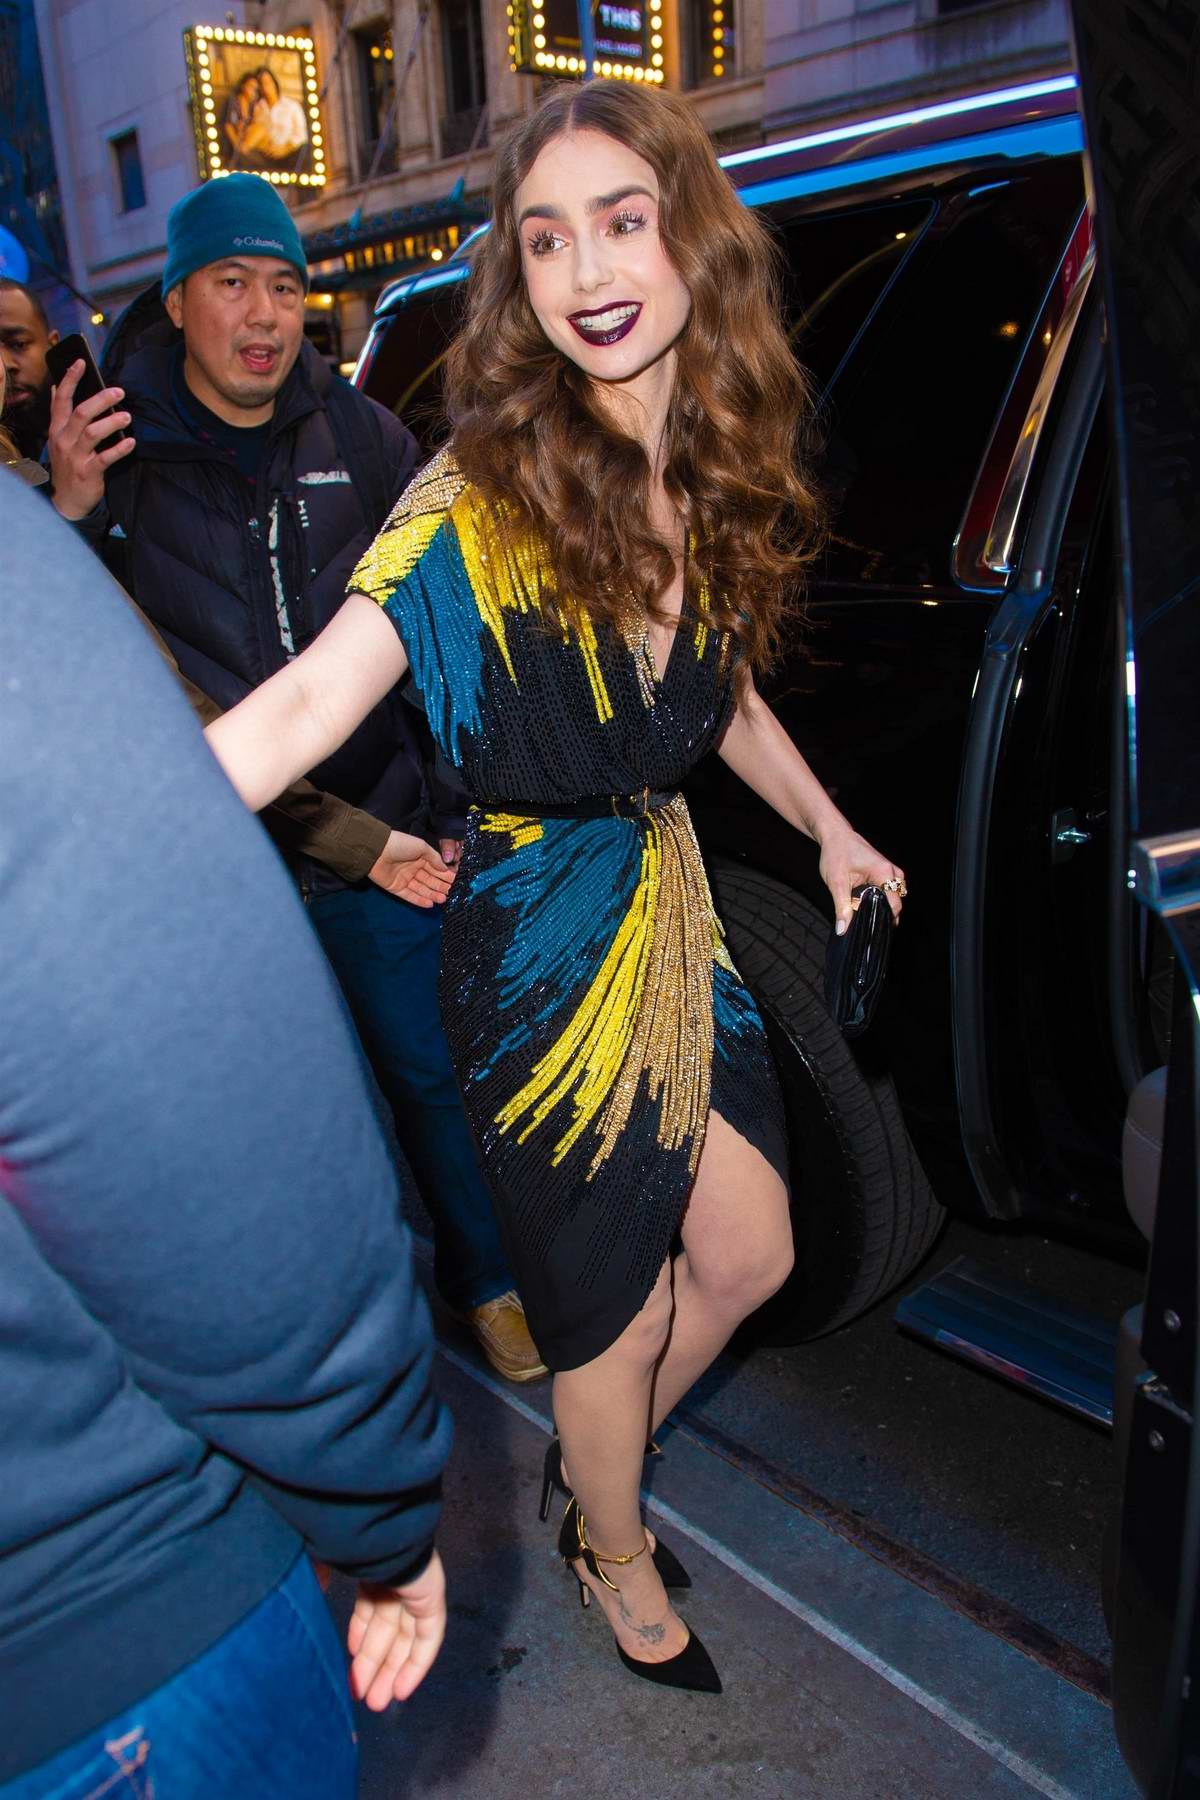 Lily Collins is all smiles while out in a colorful sequined dress in New York City